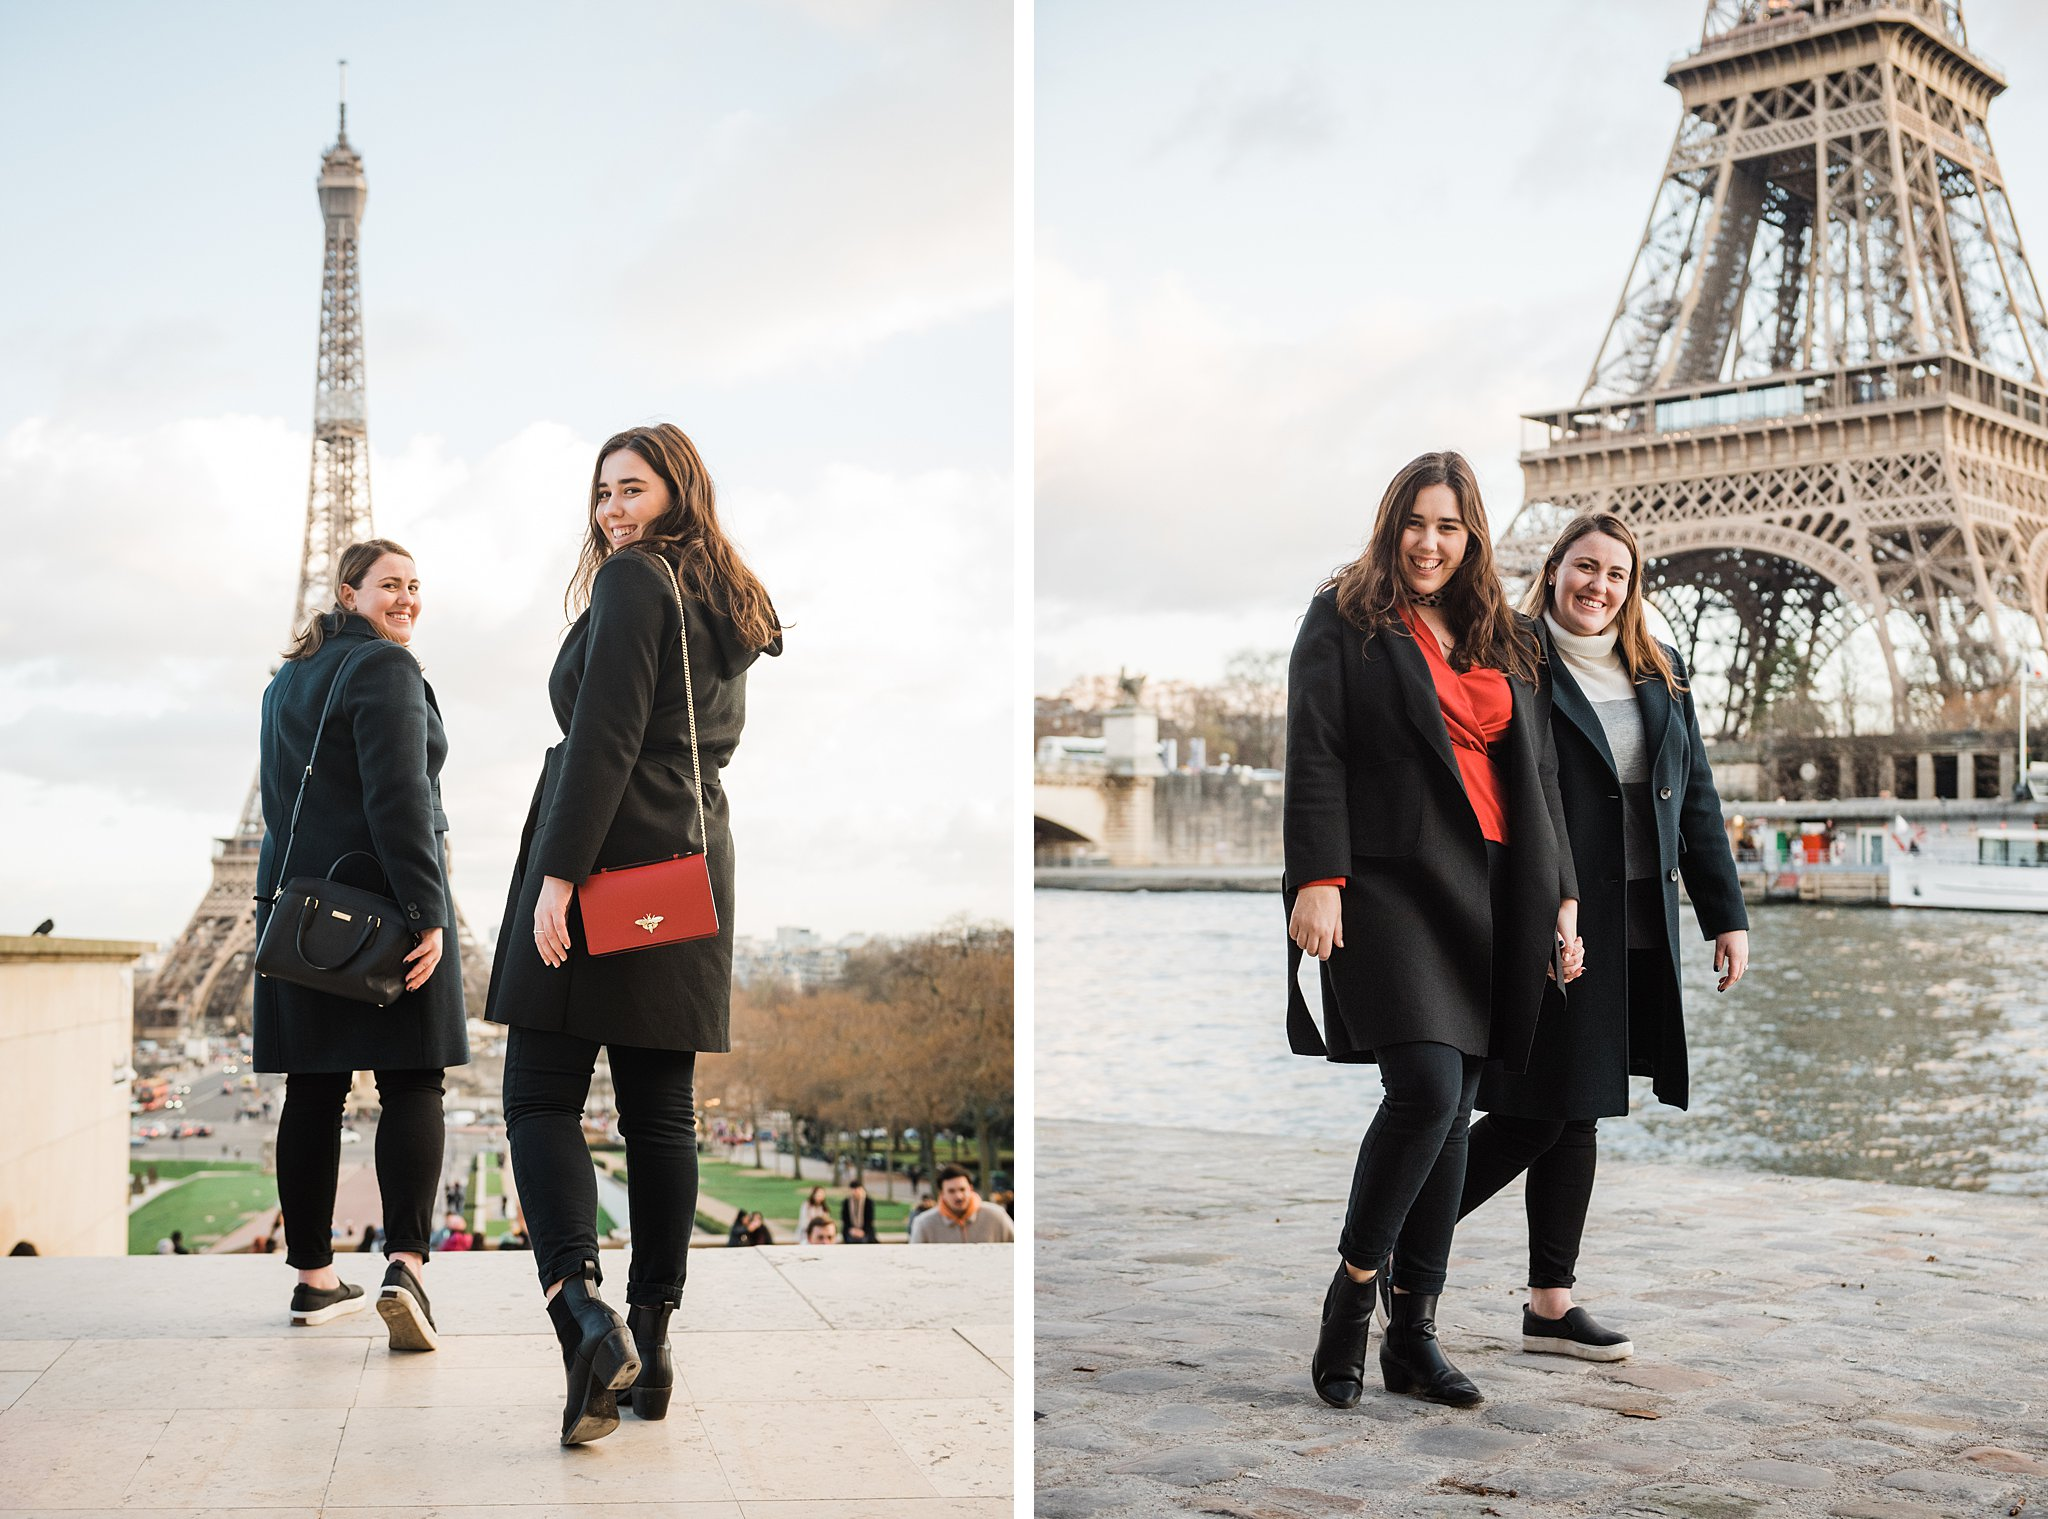 Two sisters with the Eiffel Tower in the background on a winter photo shoot in Paris, as a study abroad activity and Christmas gift